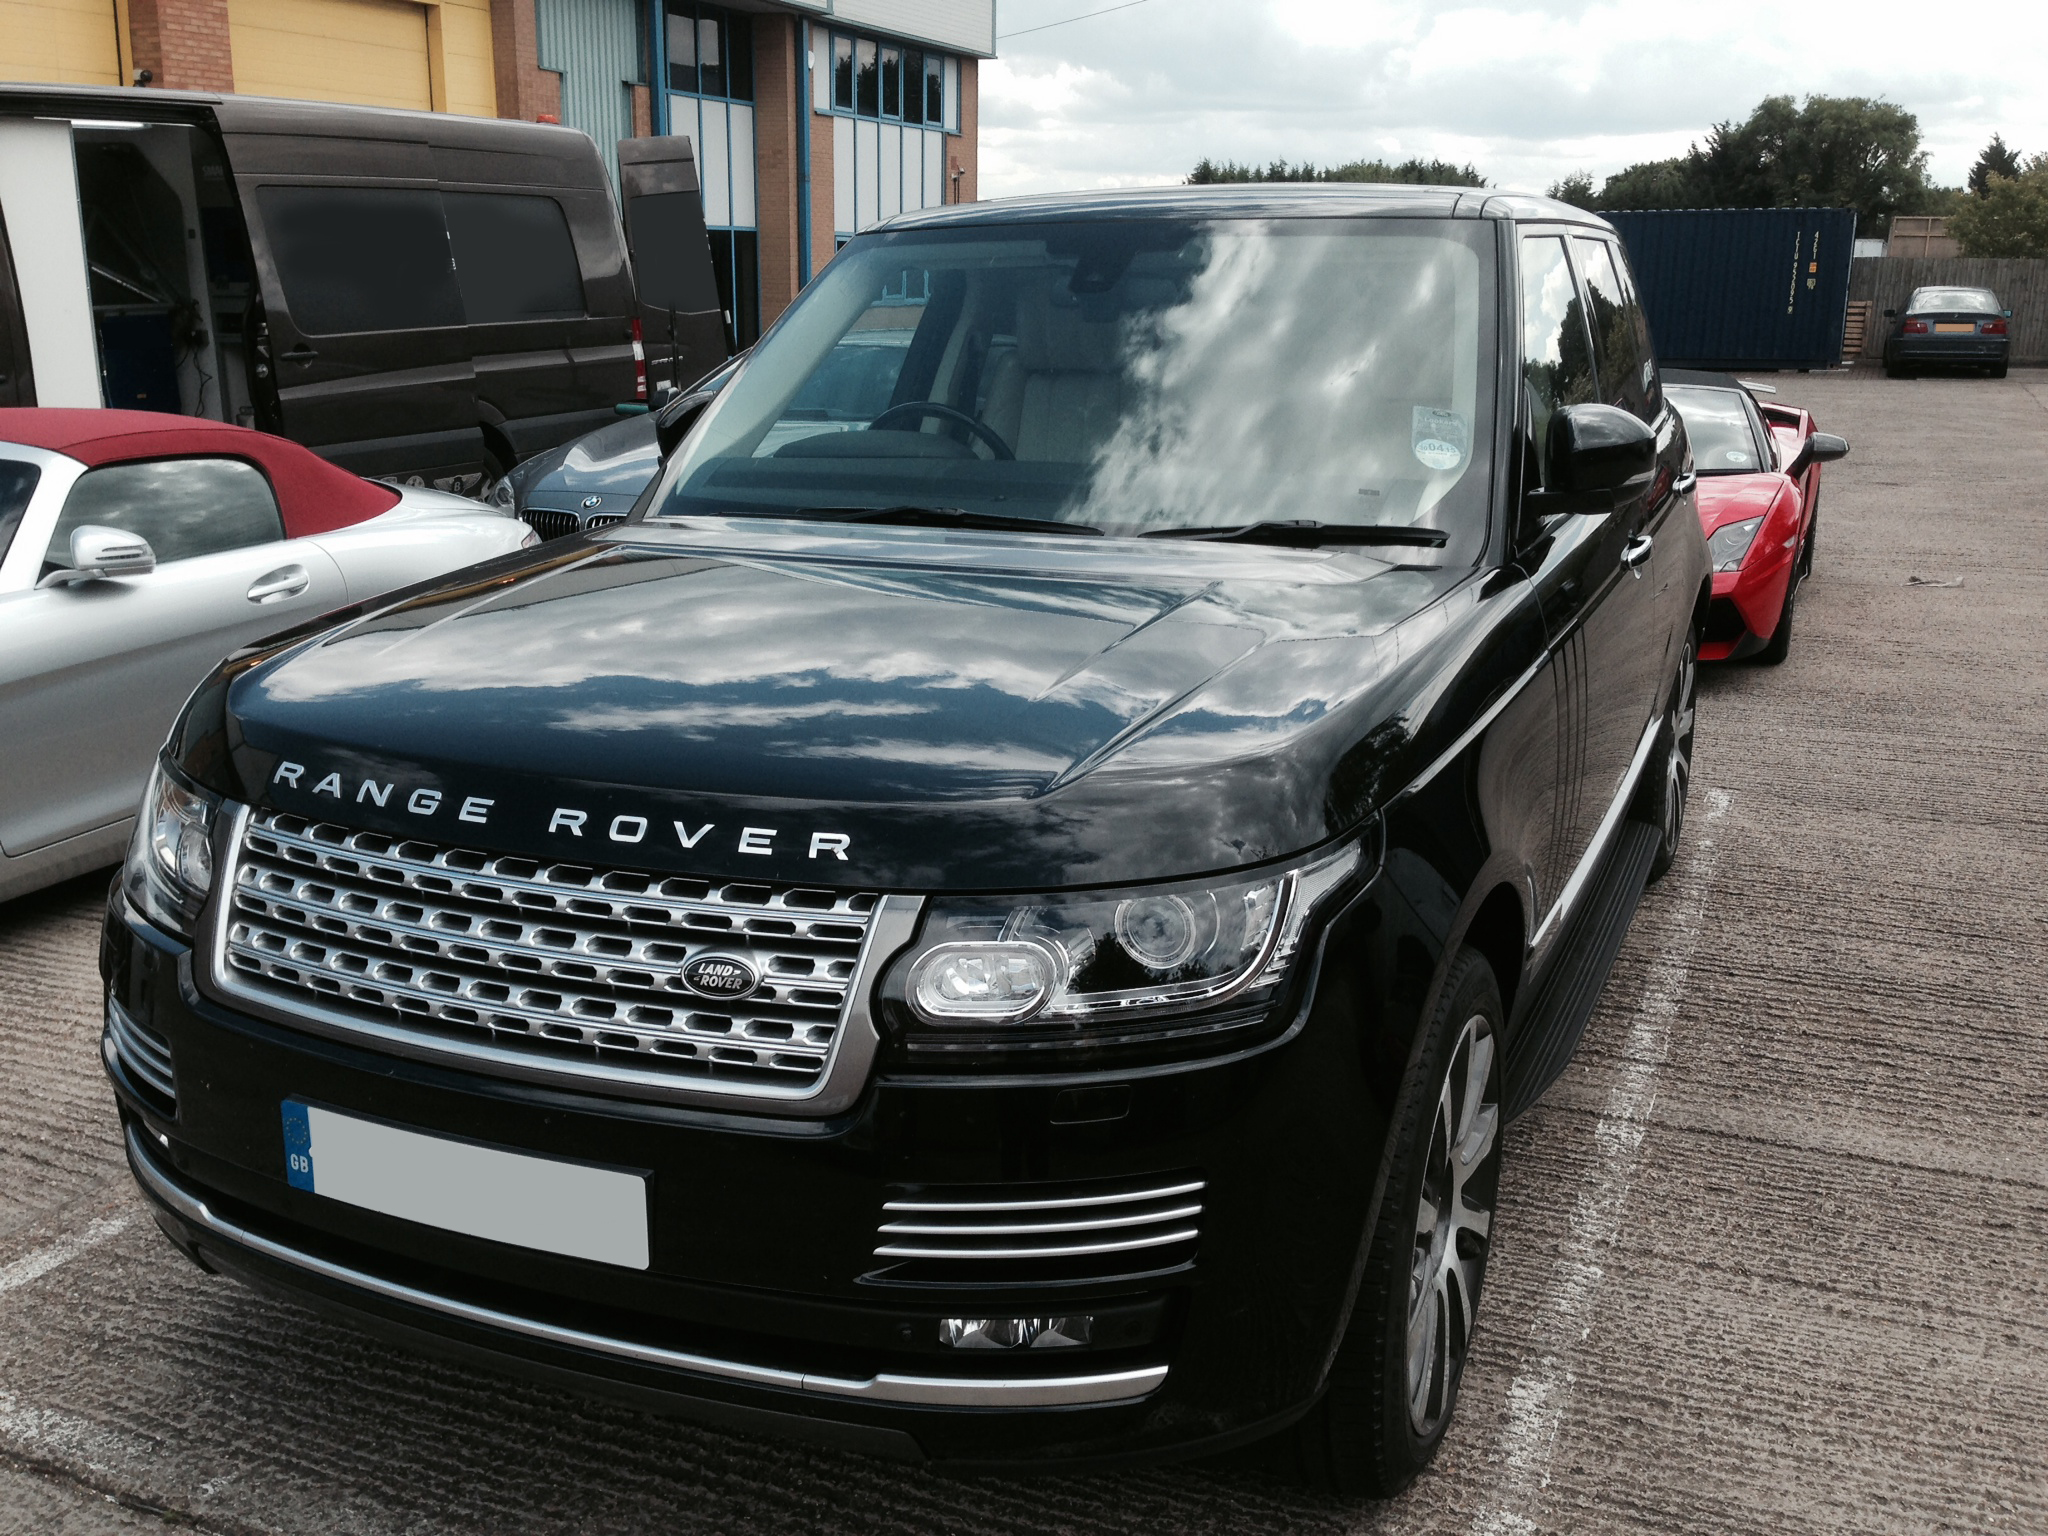 uk range rover vogue autobiography 3 0 litre tdv6 se hire rent a range rover vogue. Black Bedroom Furniture Sets. Home Design Ideas